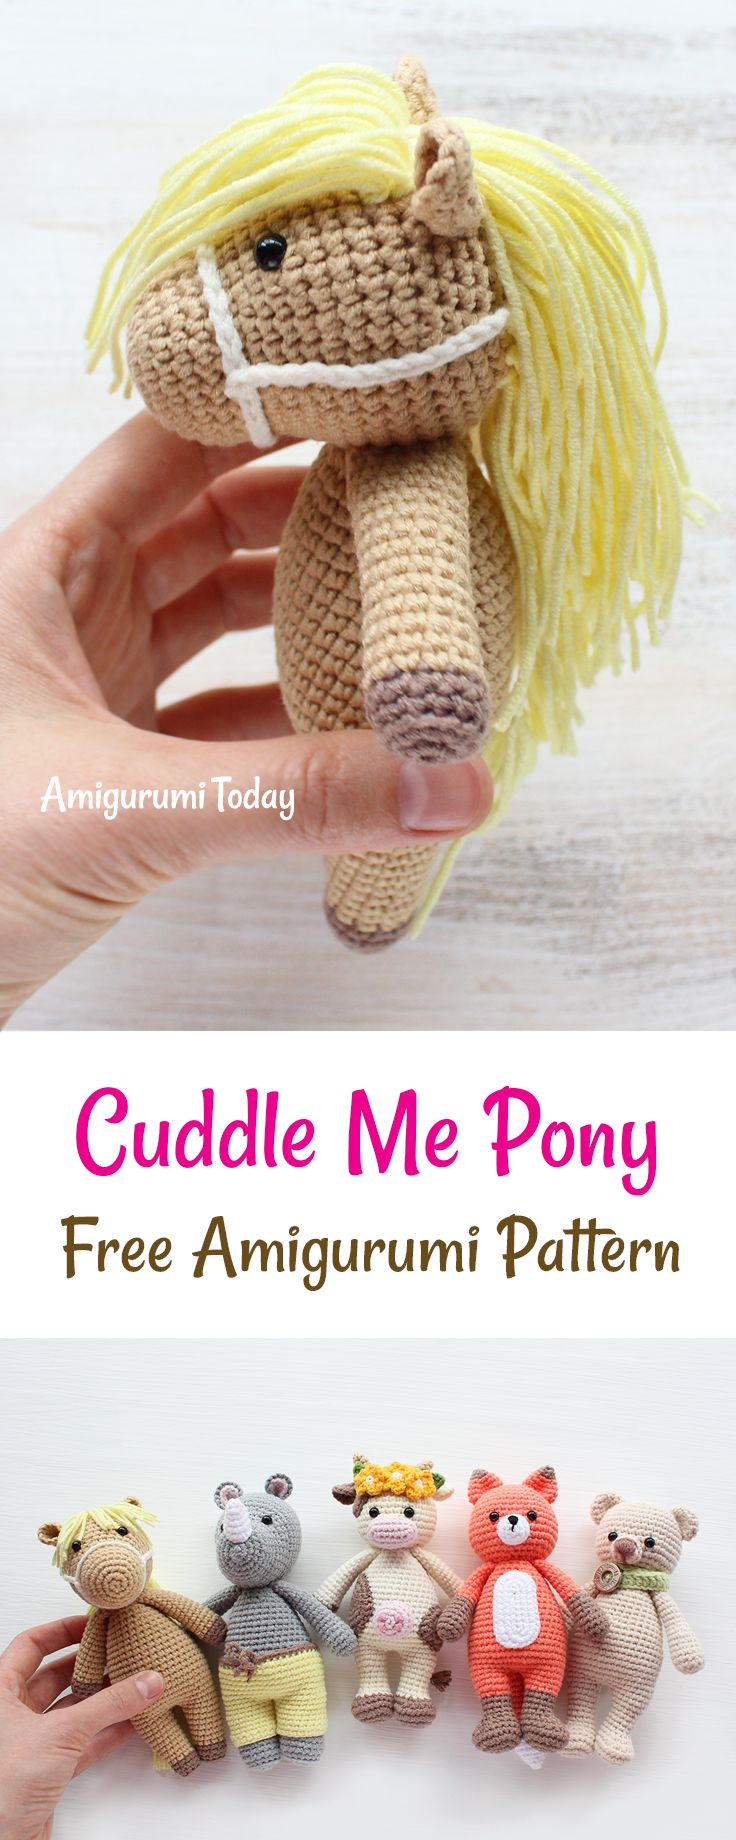 This crochet pony is another addition to our Cuddle Me Toy collection. Whether you use it as a cuddly toy or a playmate, Cuddle Me Pony will make many dreams come true for all young pony lovers. It will make a great gift :)